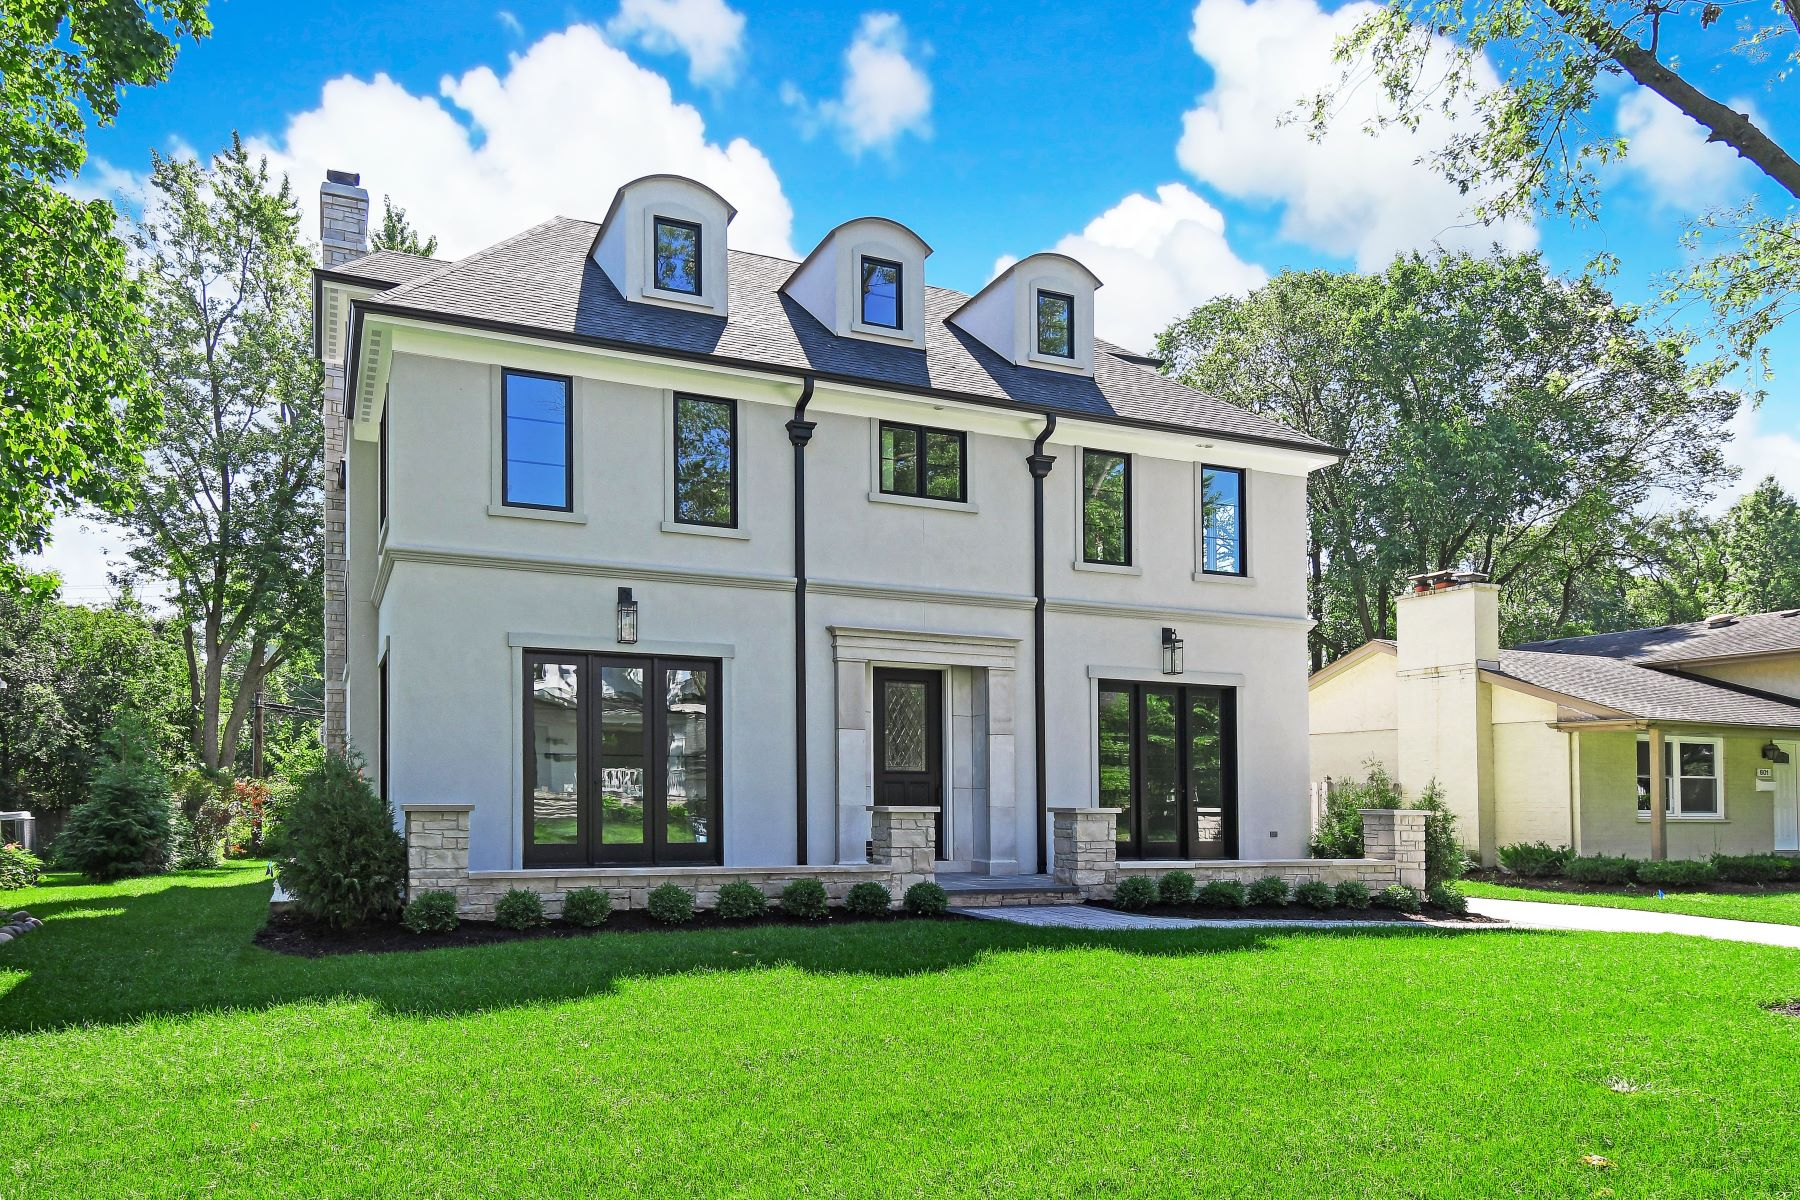 Single Family Homes for Active at Brand New Construction 603 Jefferson St Hinsdale, Illinois 60521 United States